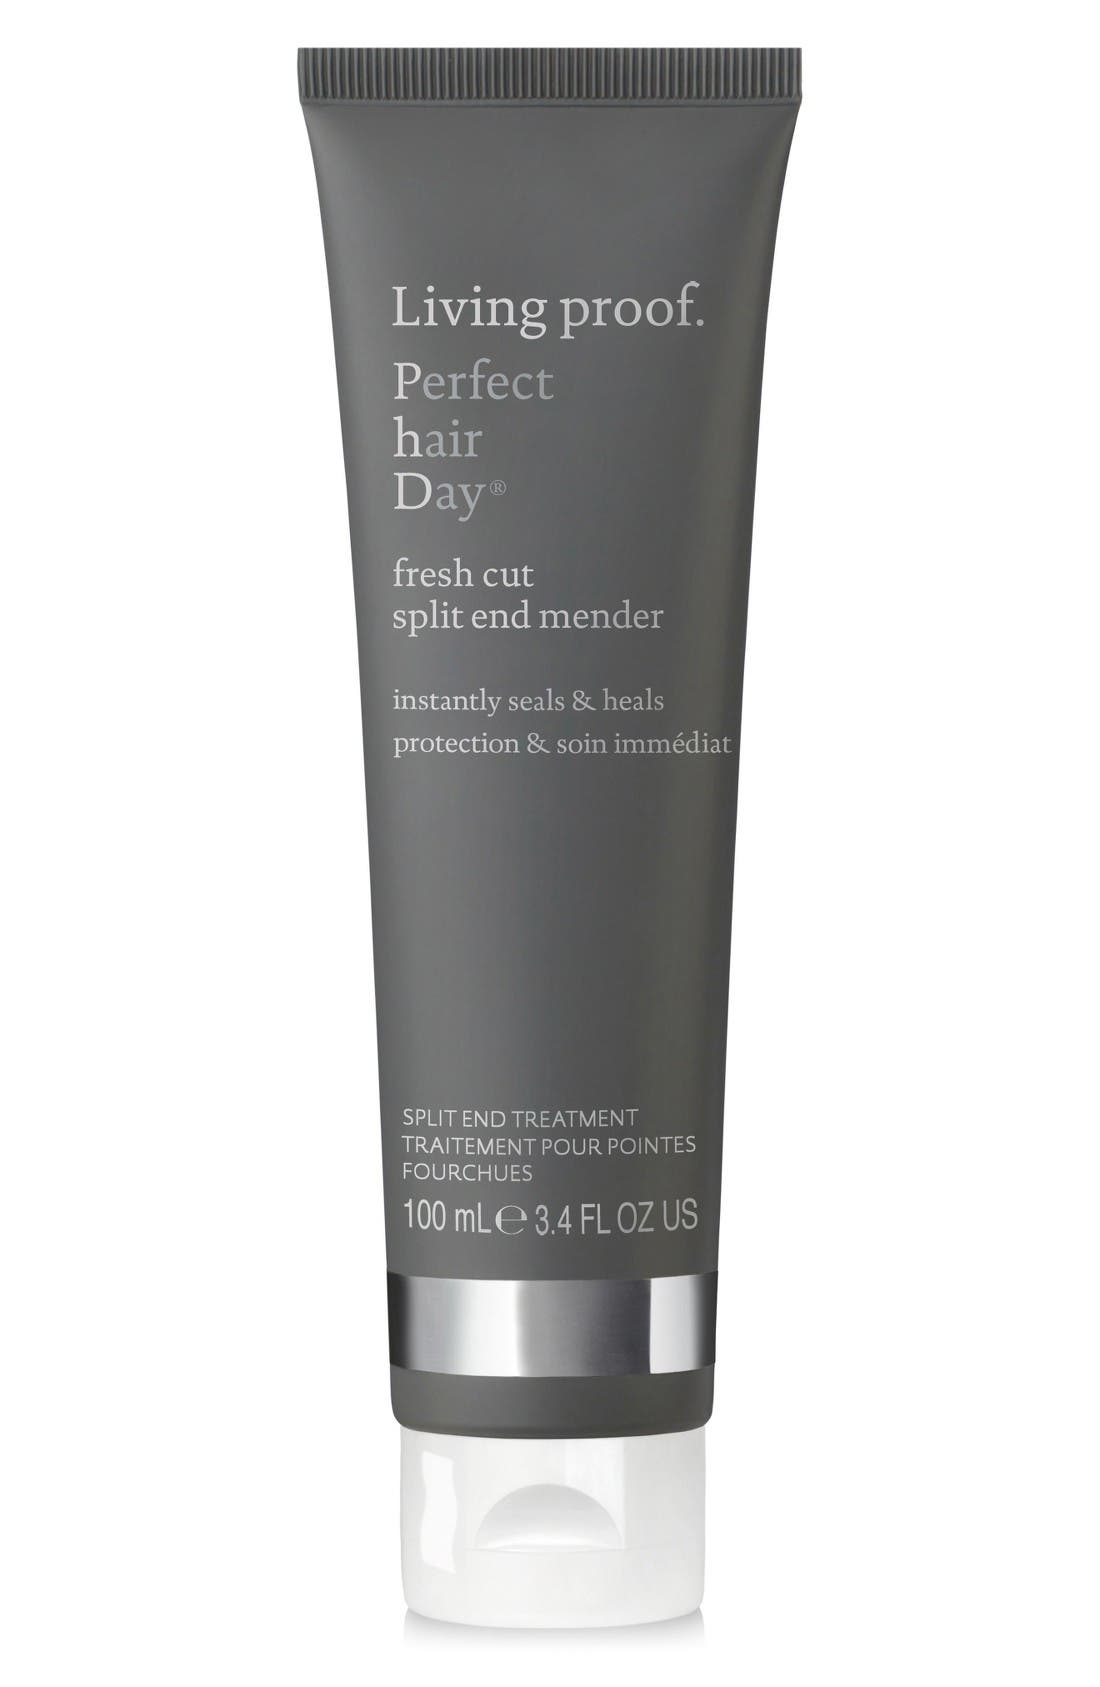 Living proof® Perfect hair Day Fresh Cut Split End Mender